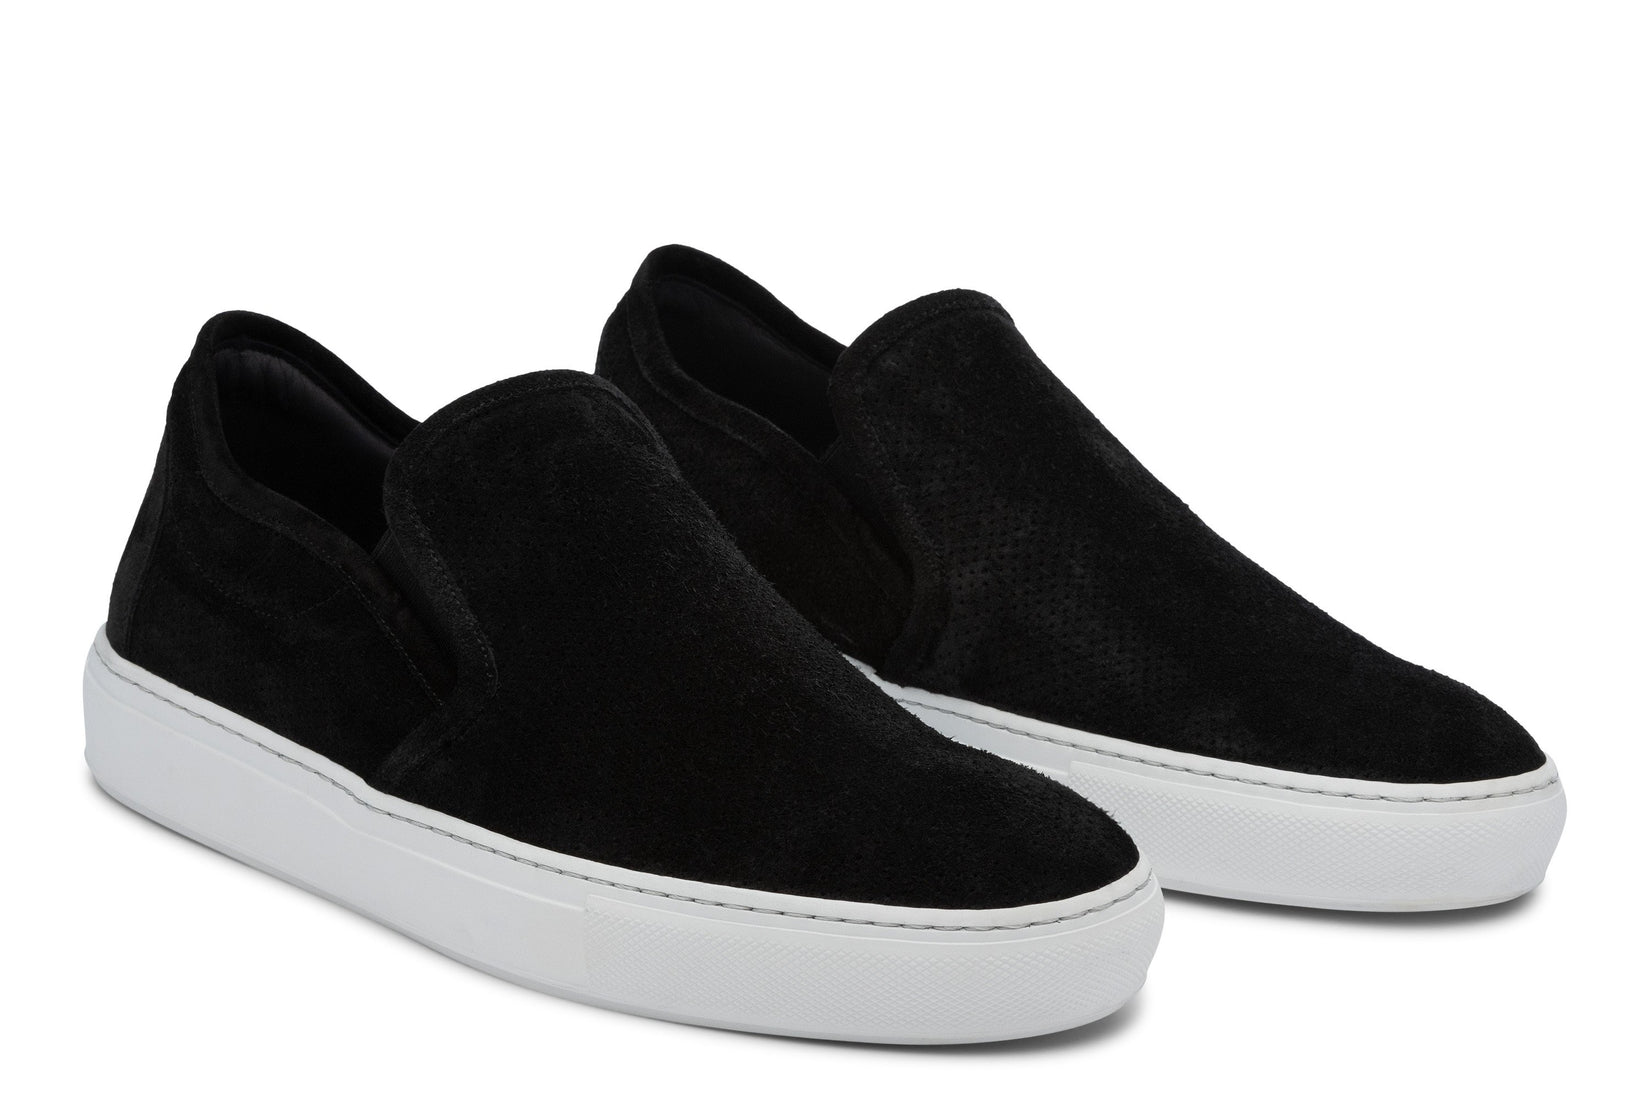 Tuesday Slip-On Sneaker in Black